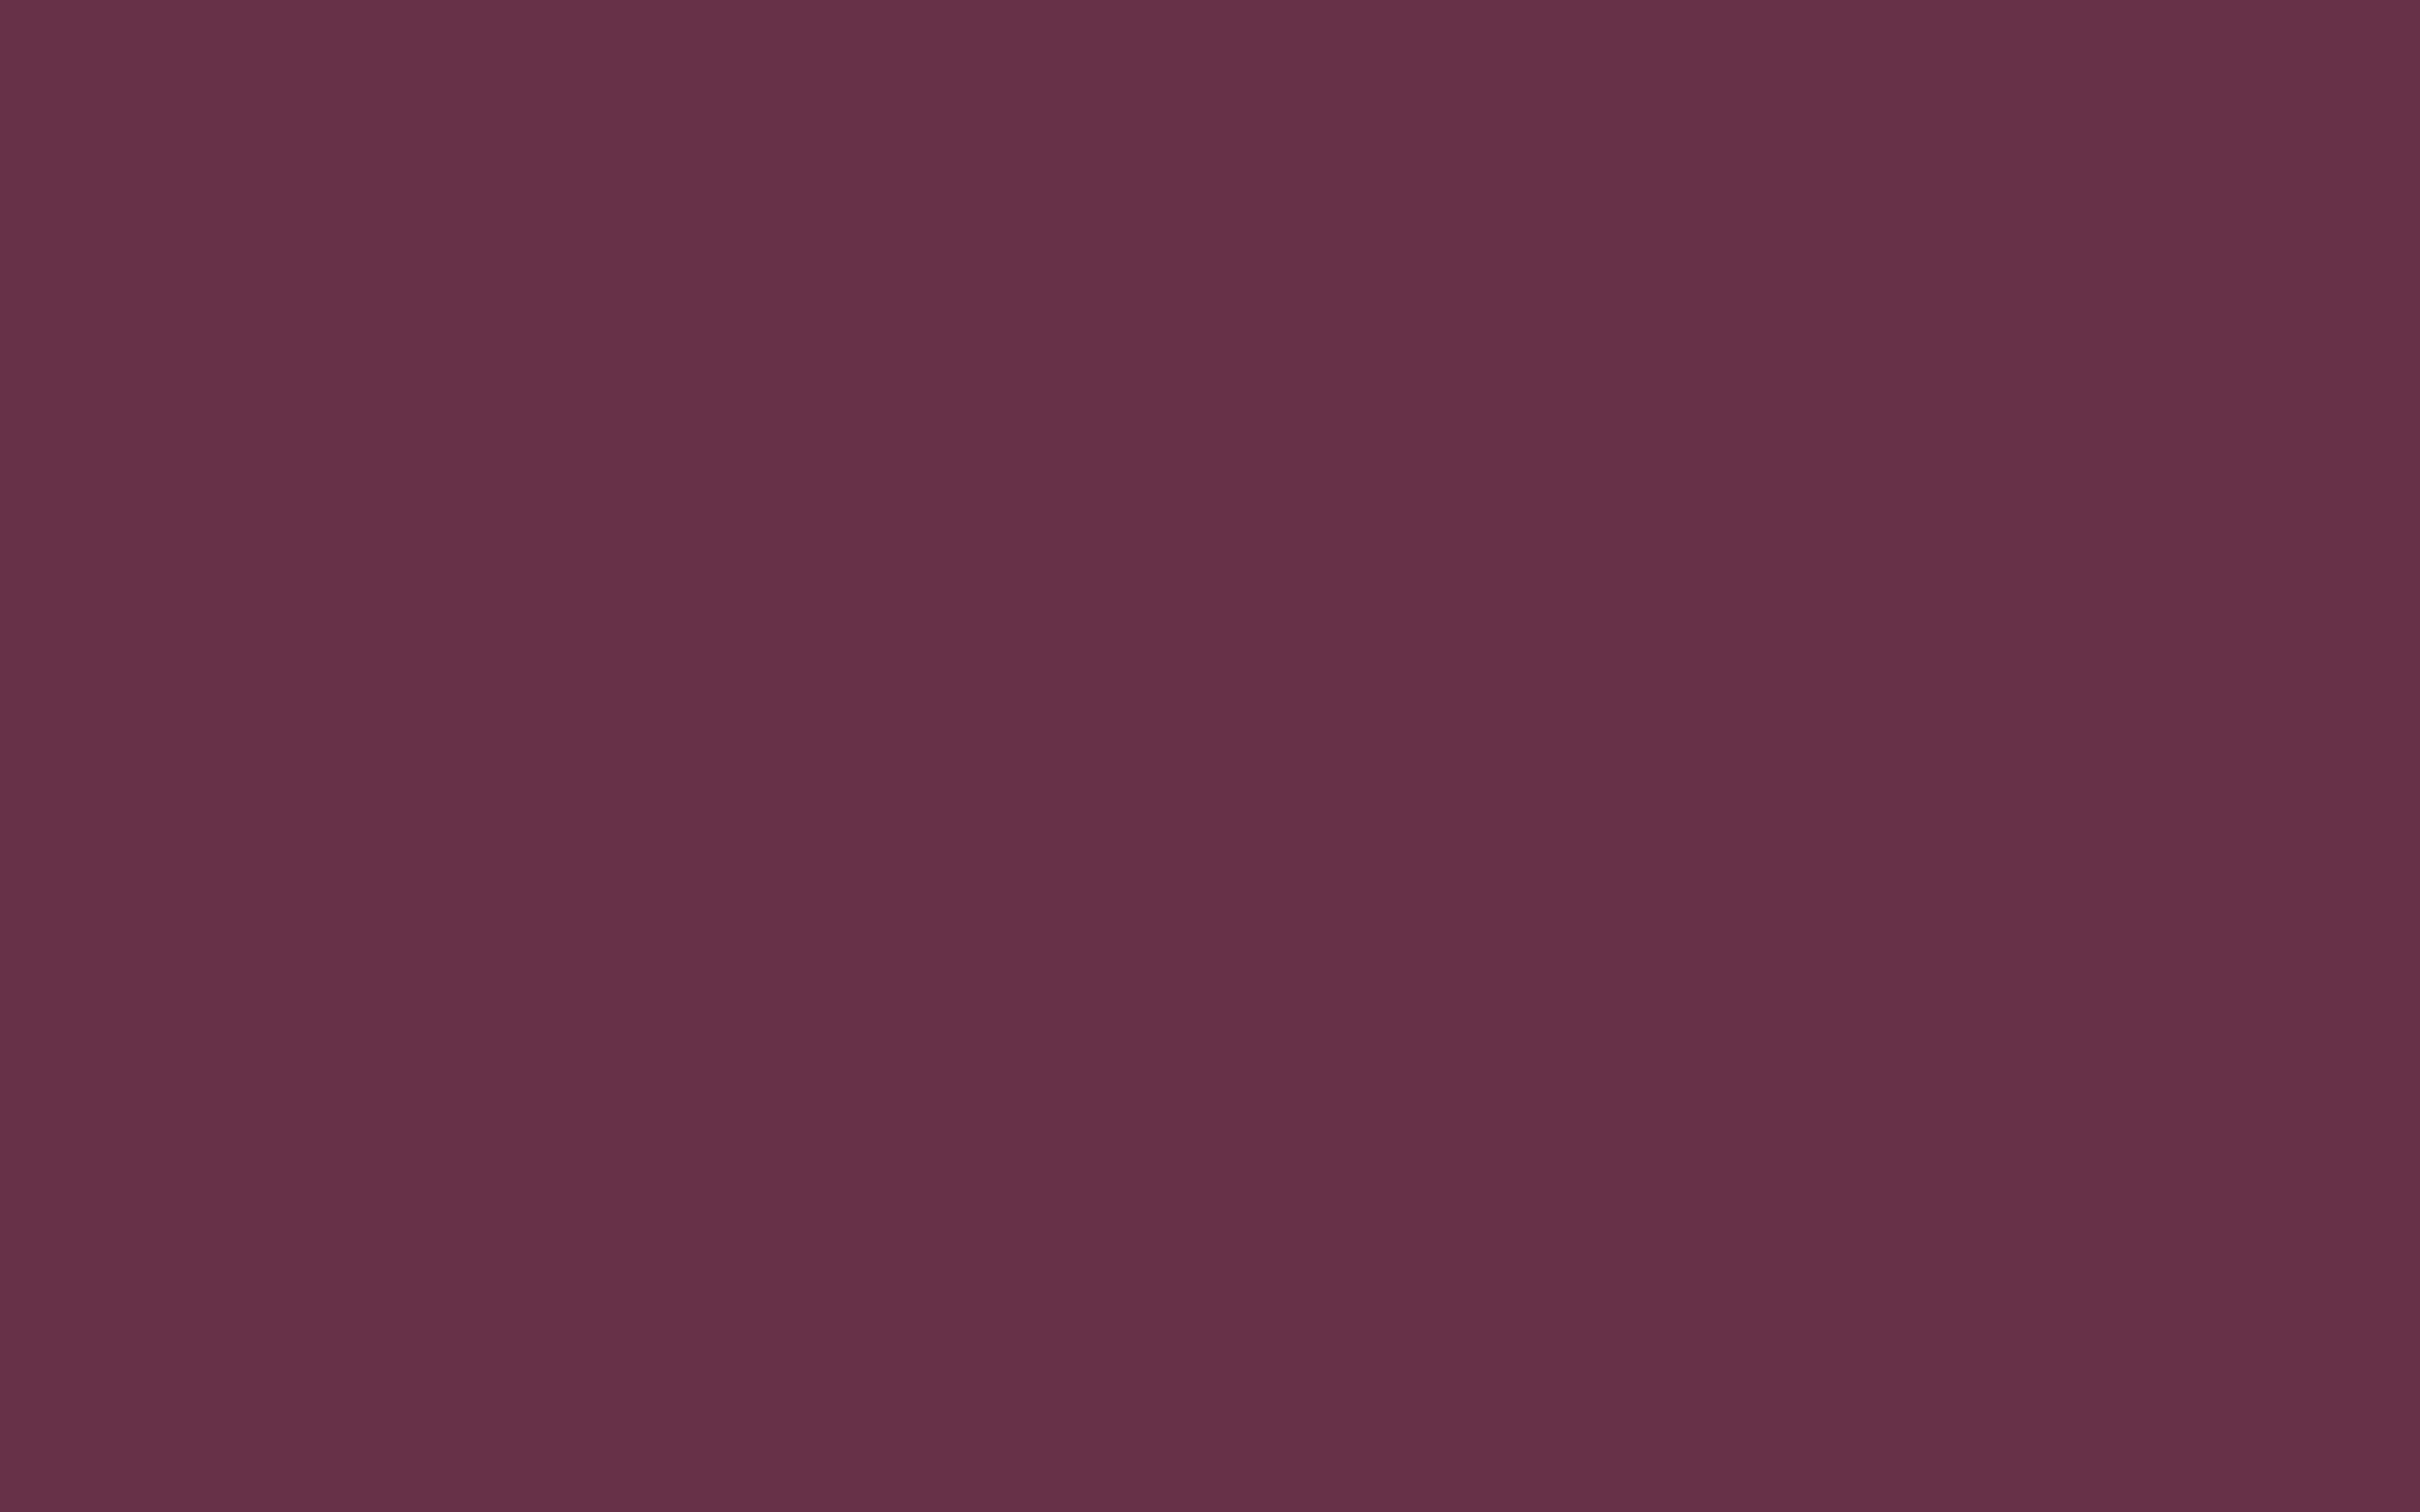 2880x1800 Old Mauve Solid Color Background